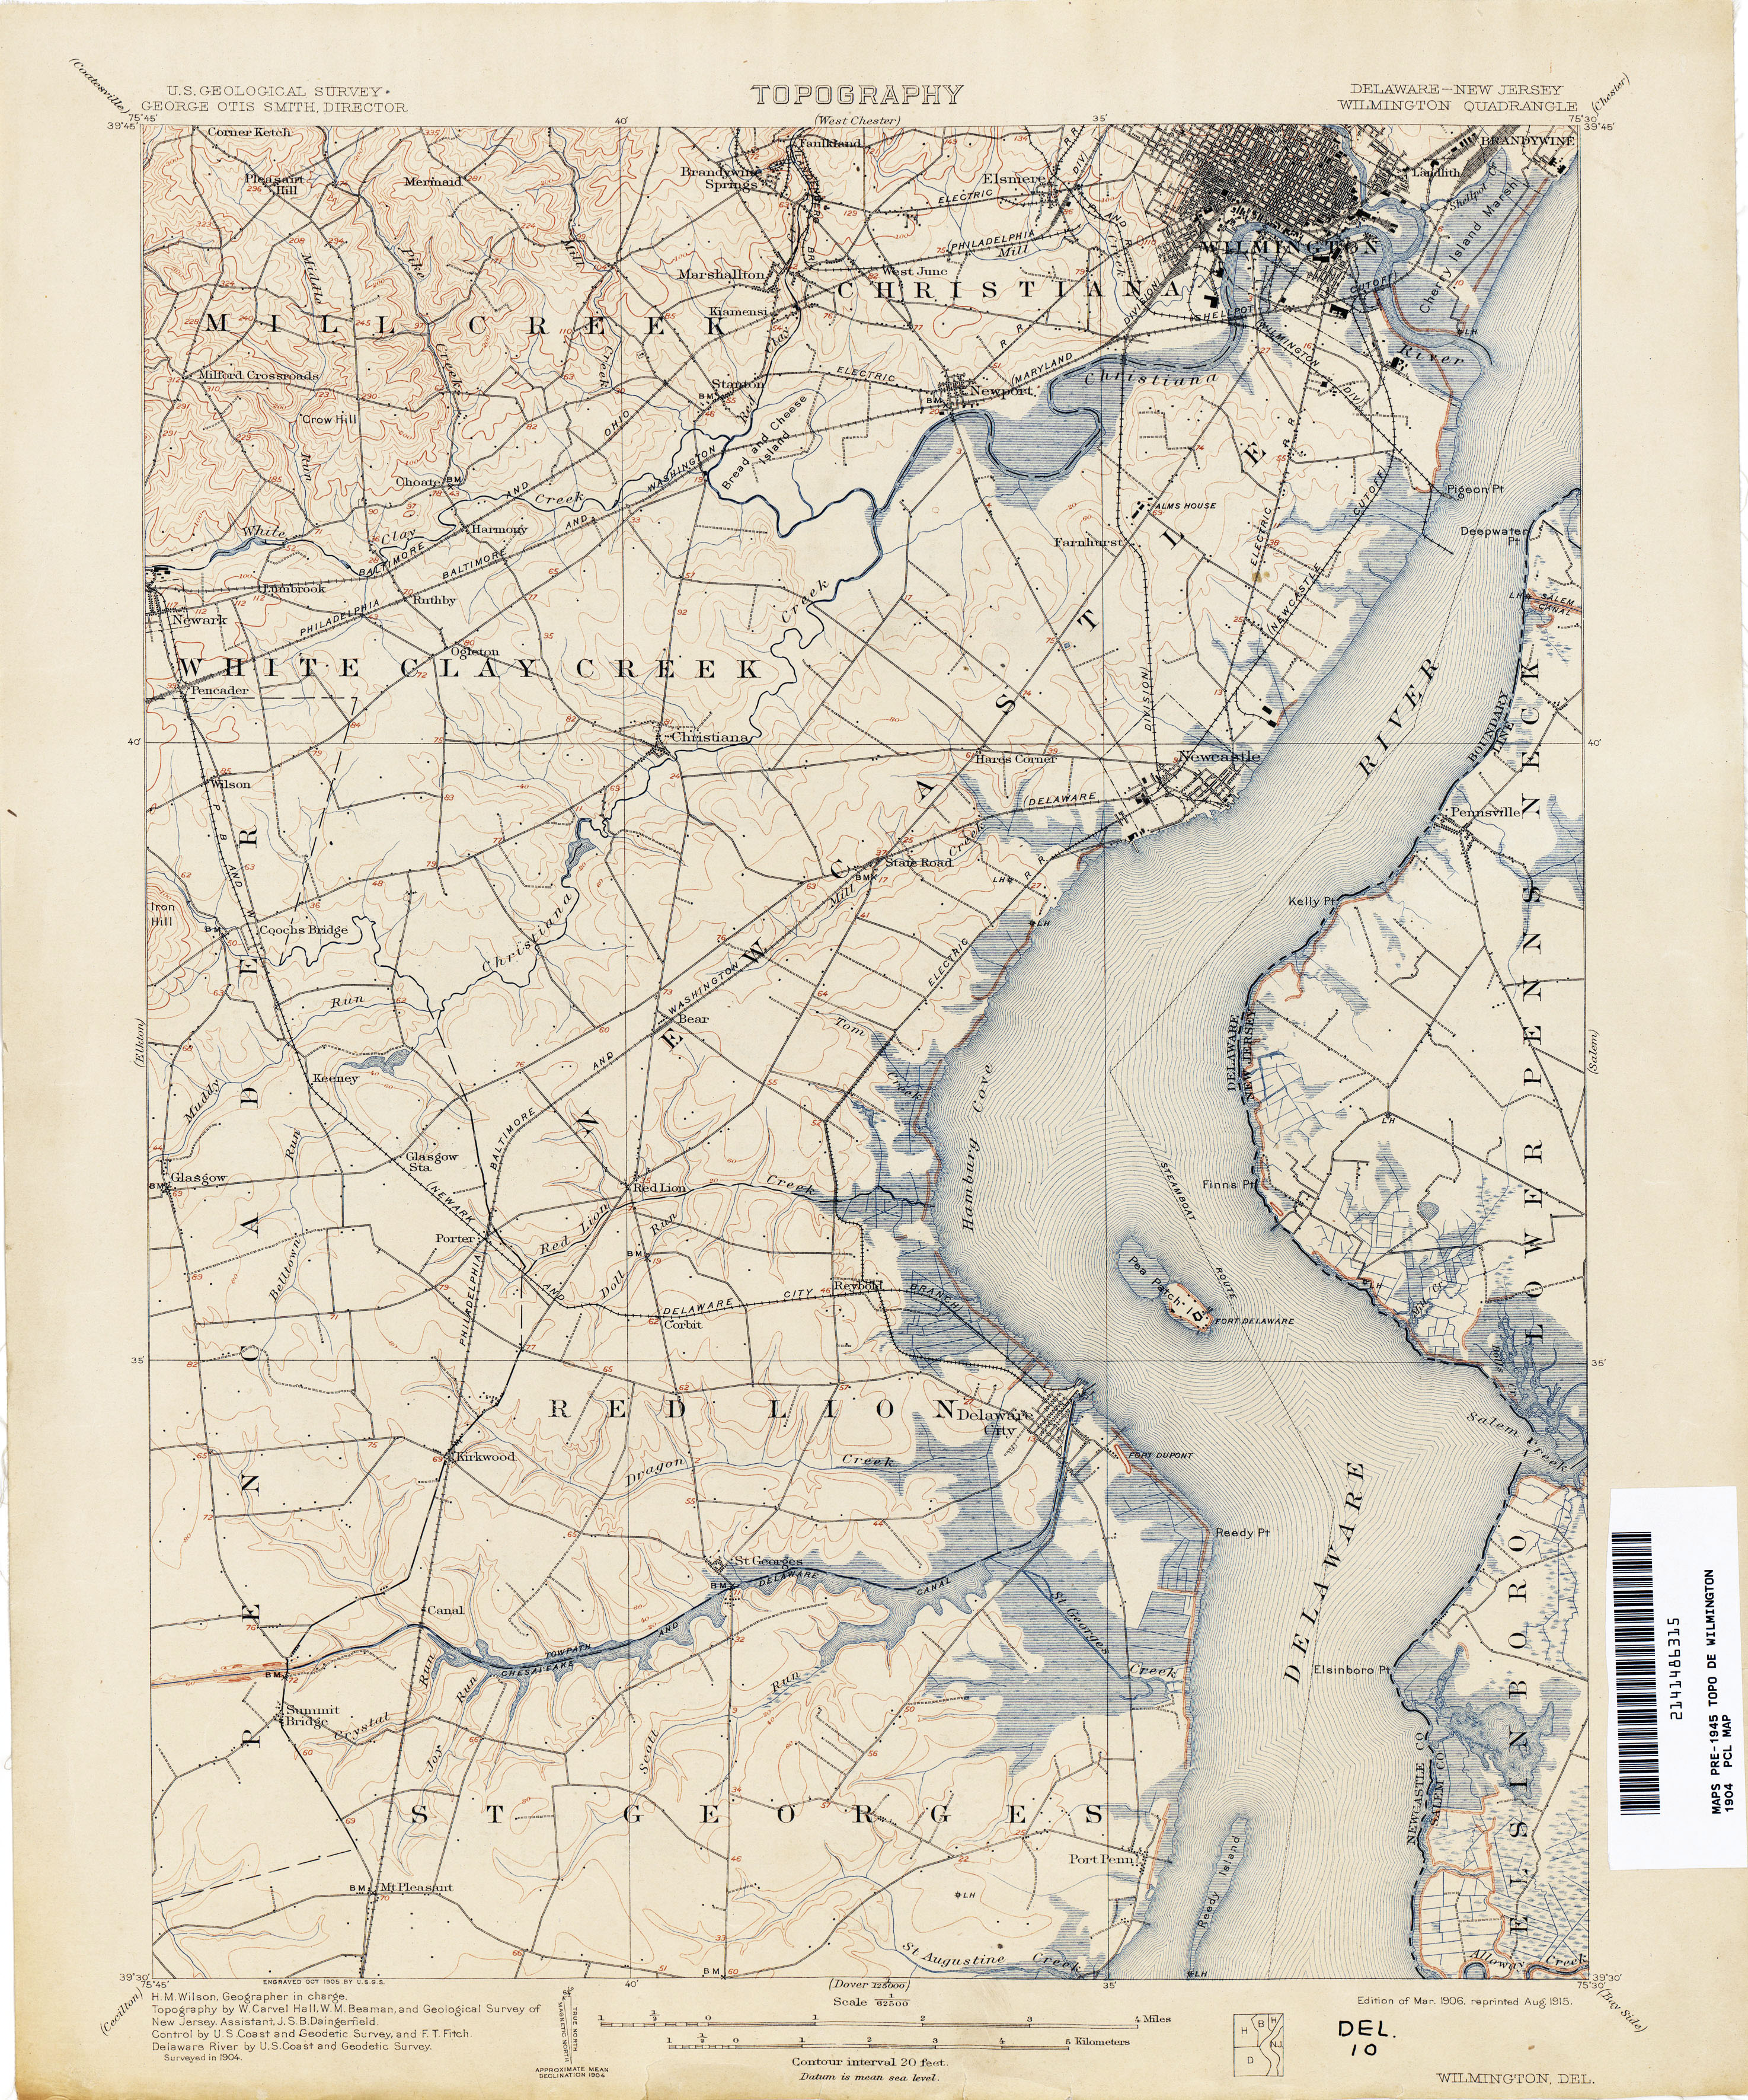 Delaware Historical Topographic Maps PerryCastañeda Map - Delaware map